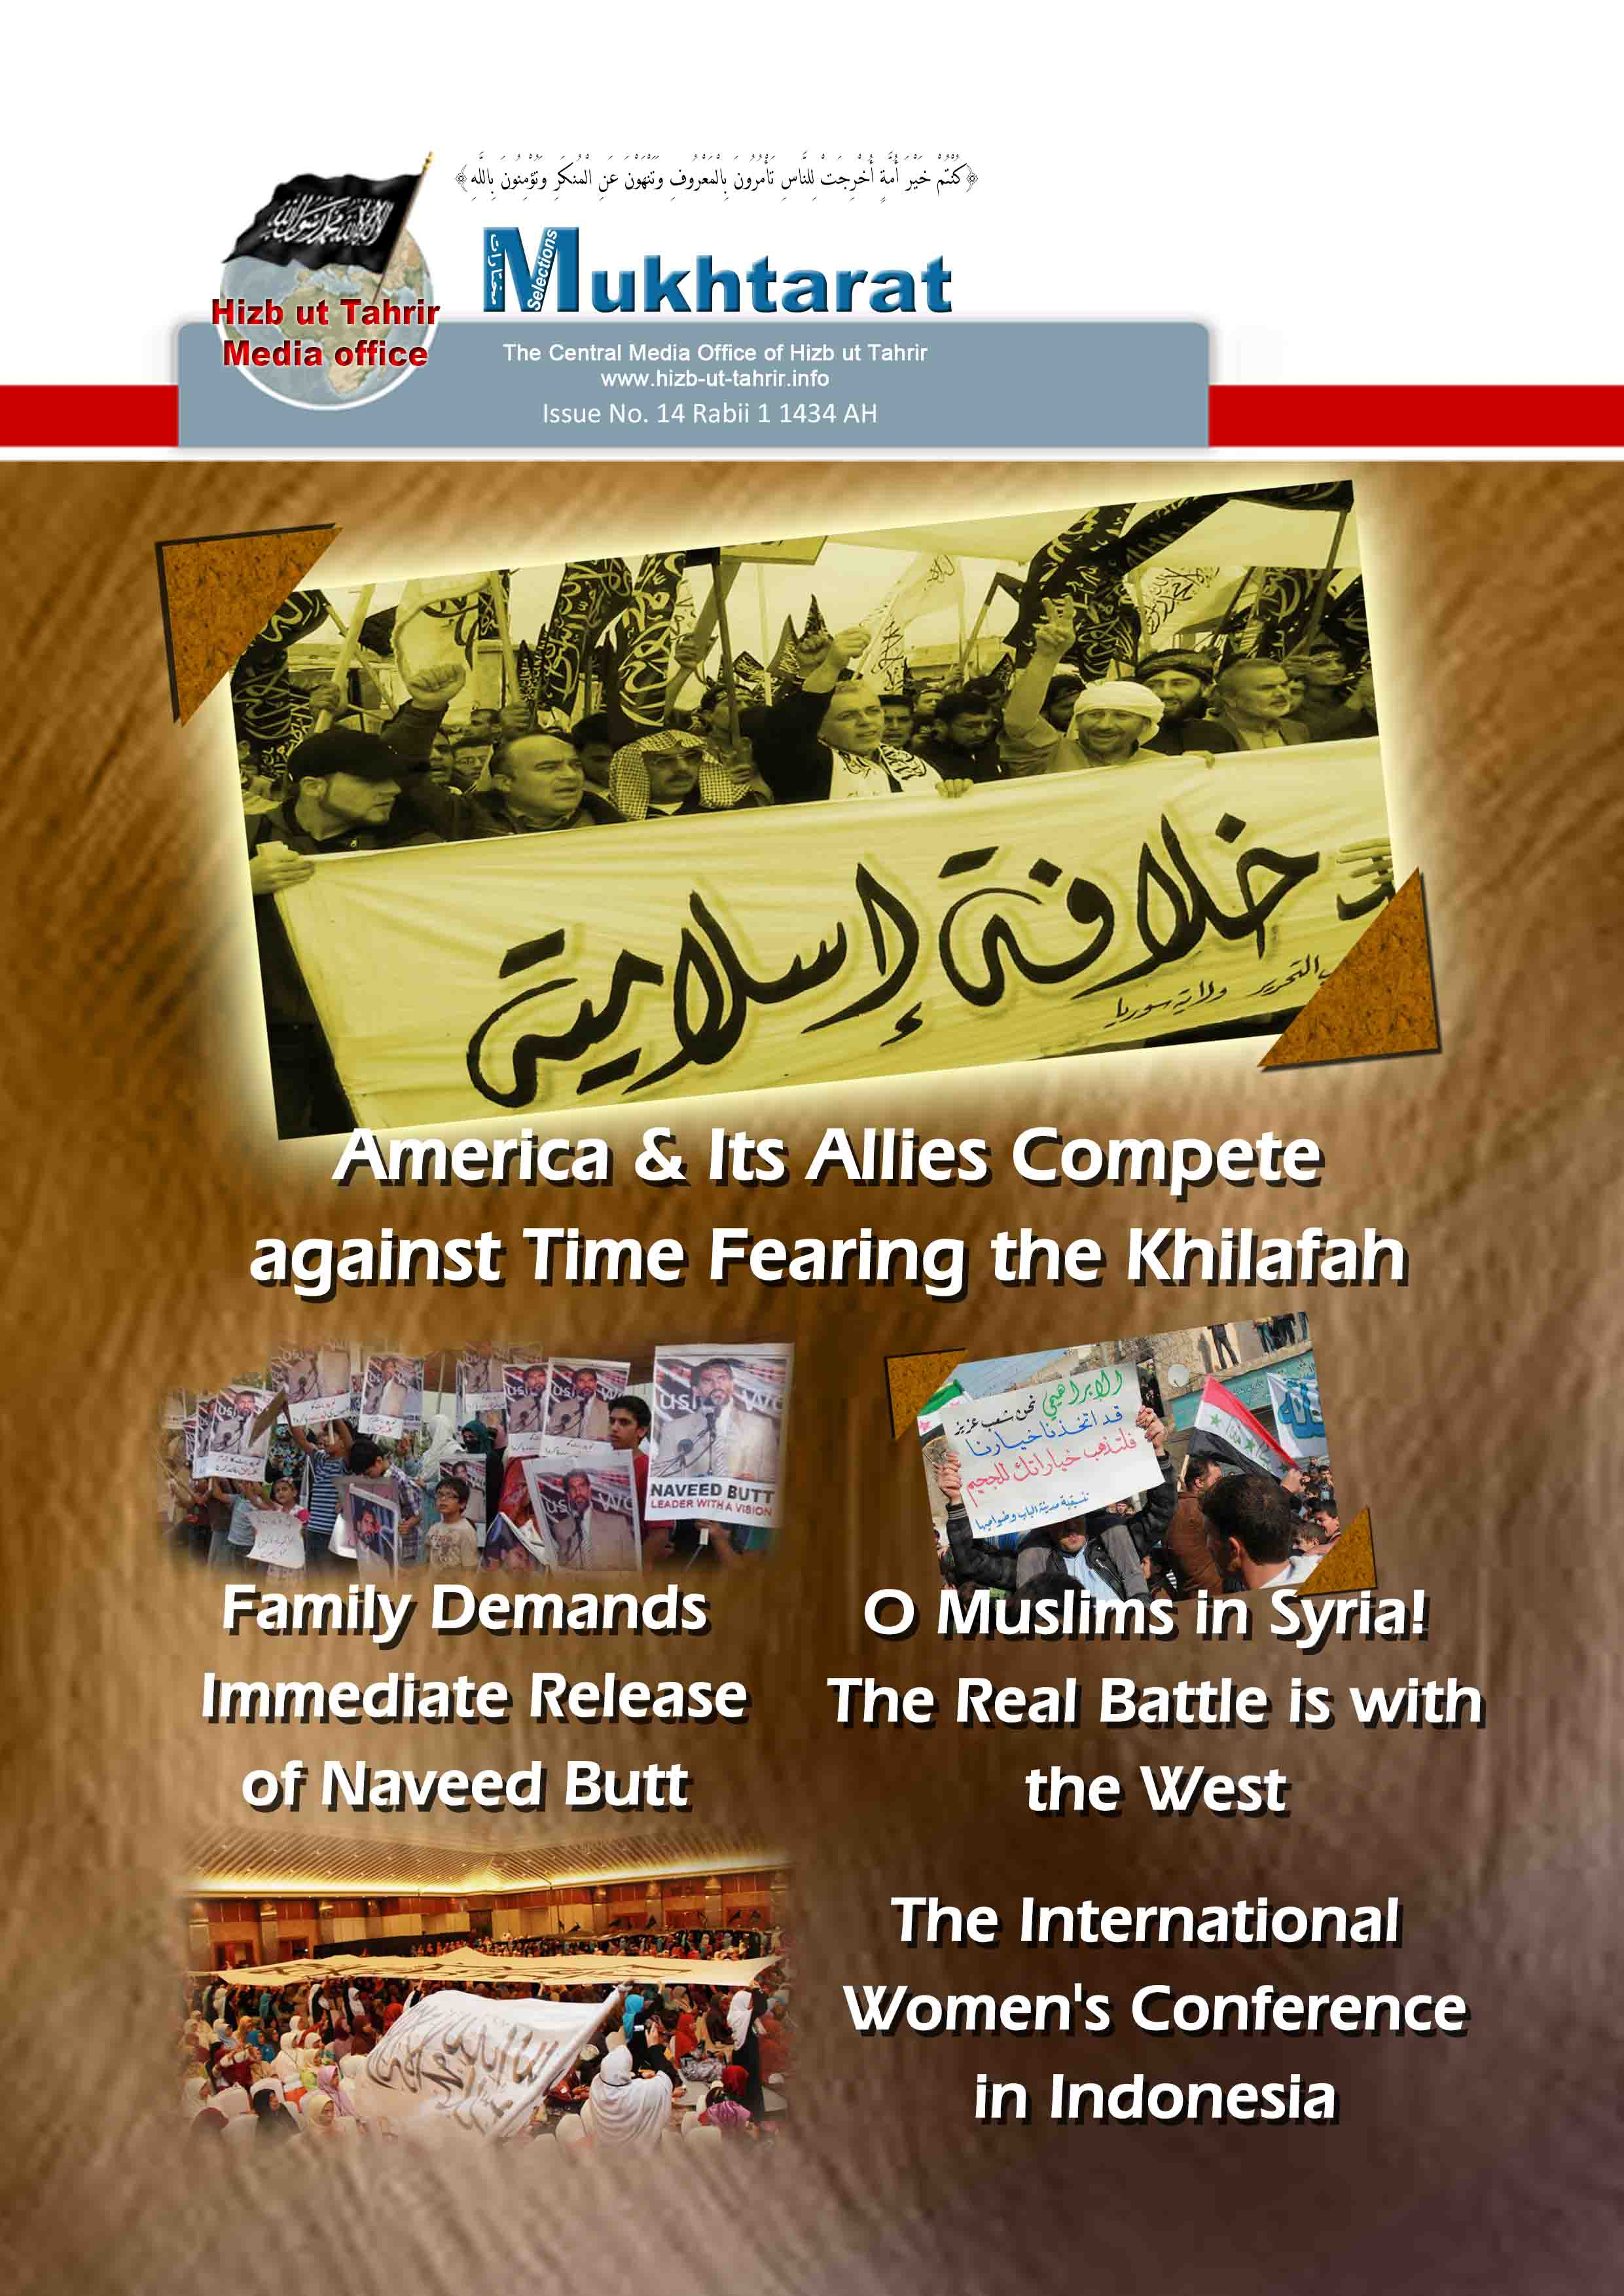 Mukht Issue 14 front cover